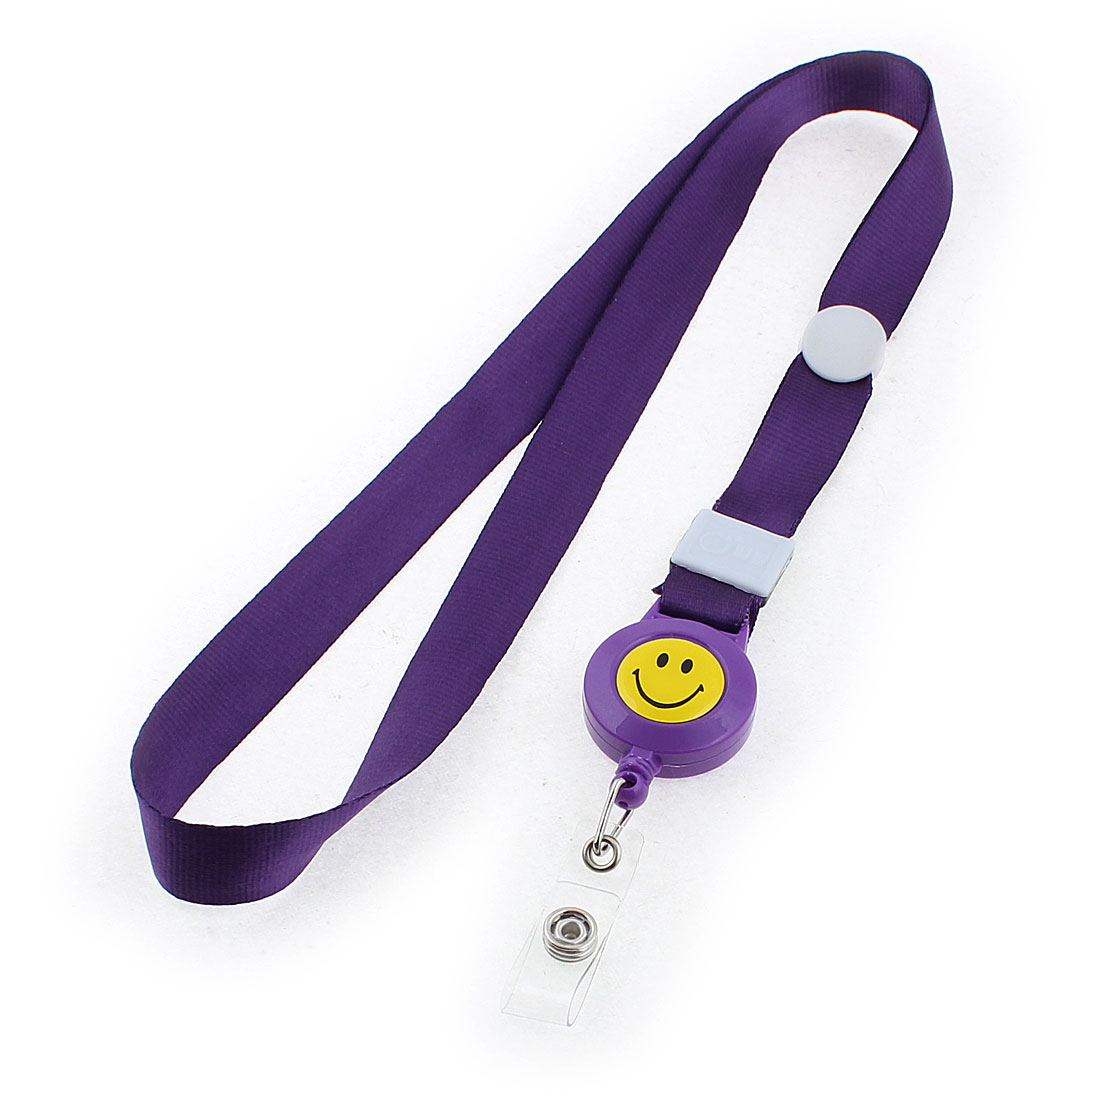 Smile Face Pattern Lanyard Exhibition Company Name Badge ID Card Neck Strap Purple